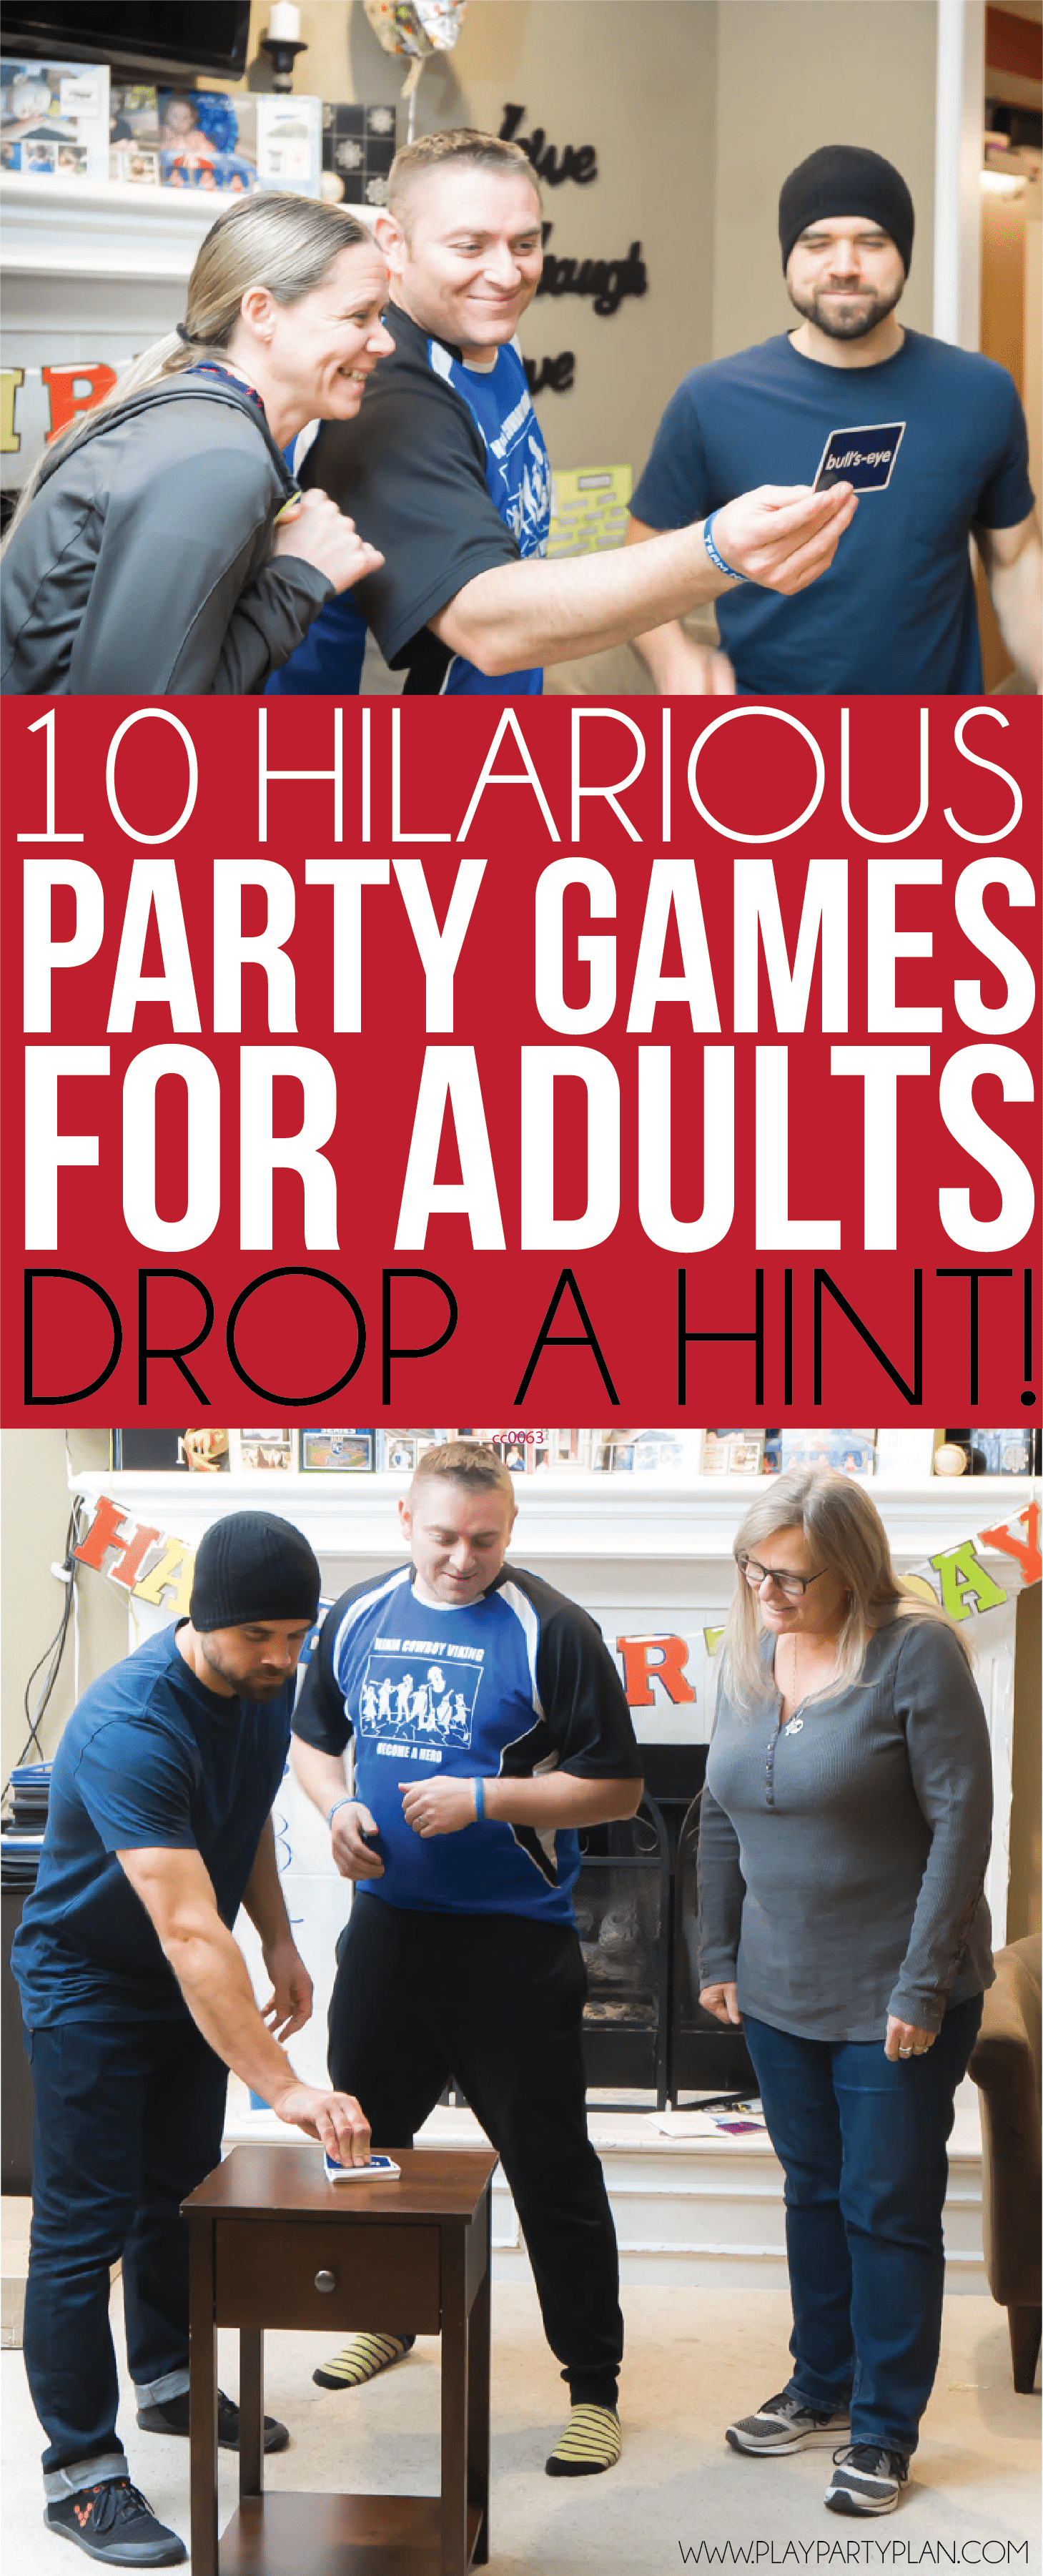 10 Hilarious Party Games For Adults That You've Probably Never Played - Free Printable Women's Party Games